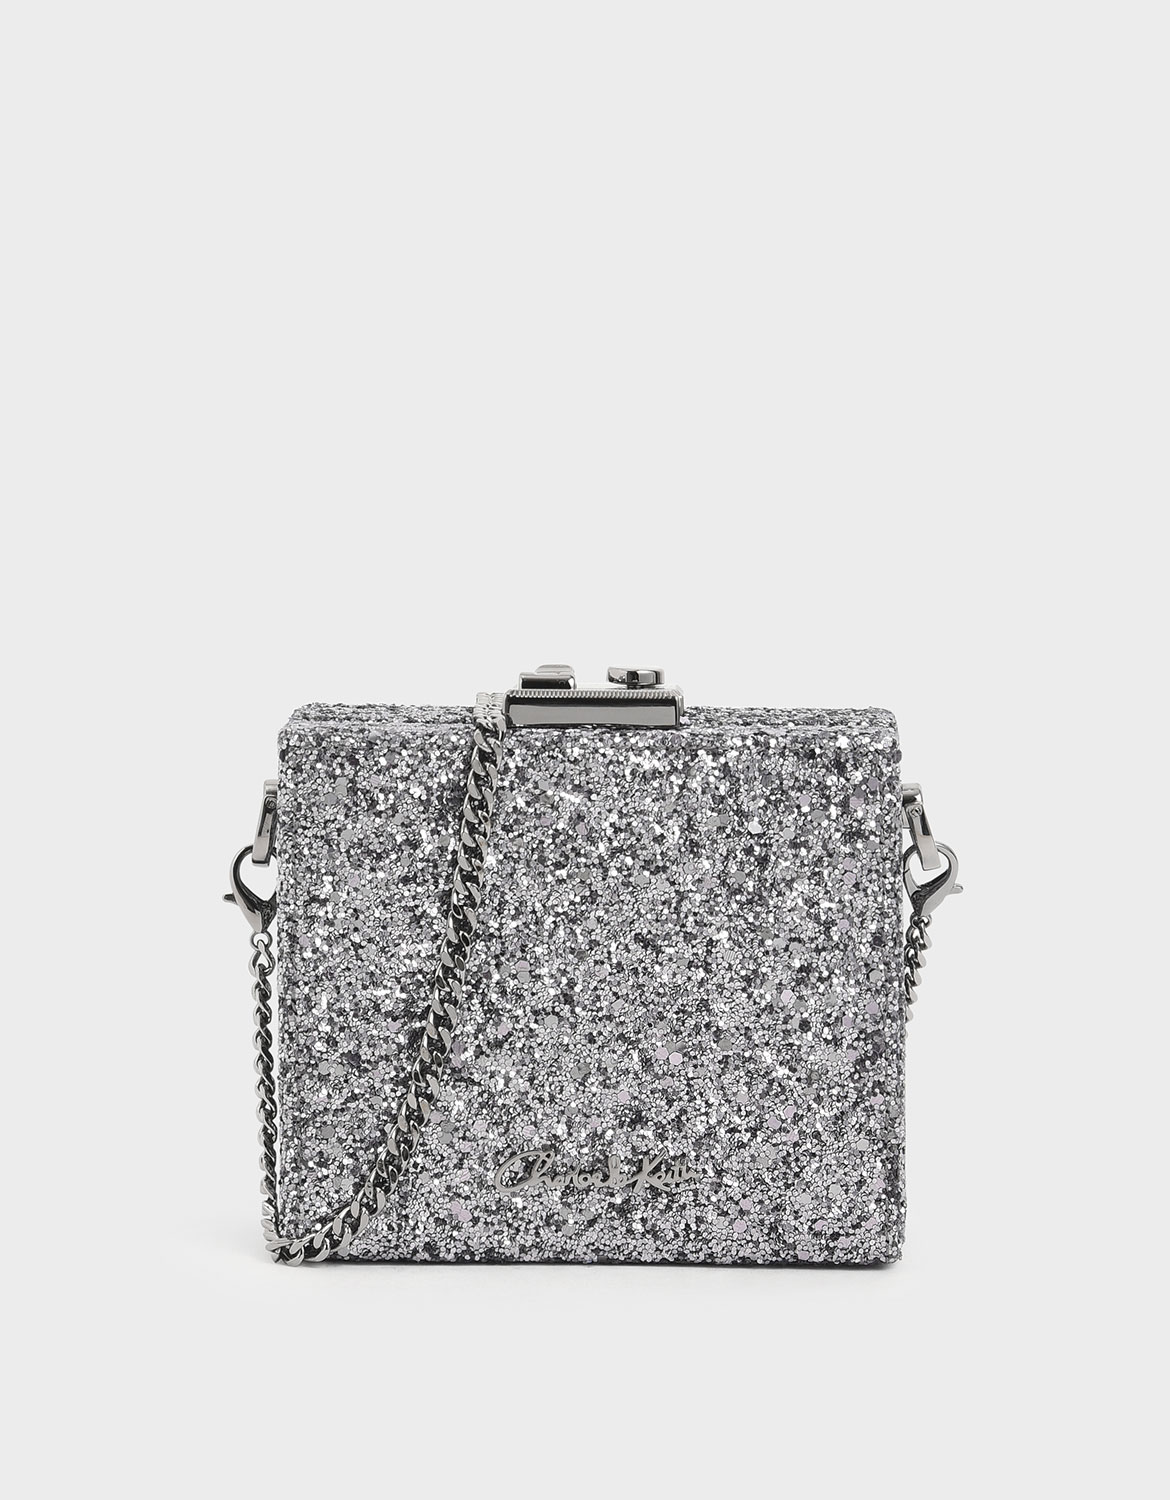 Women's pewter glitter square clutch